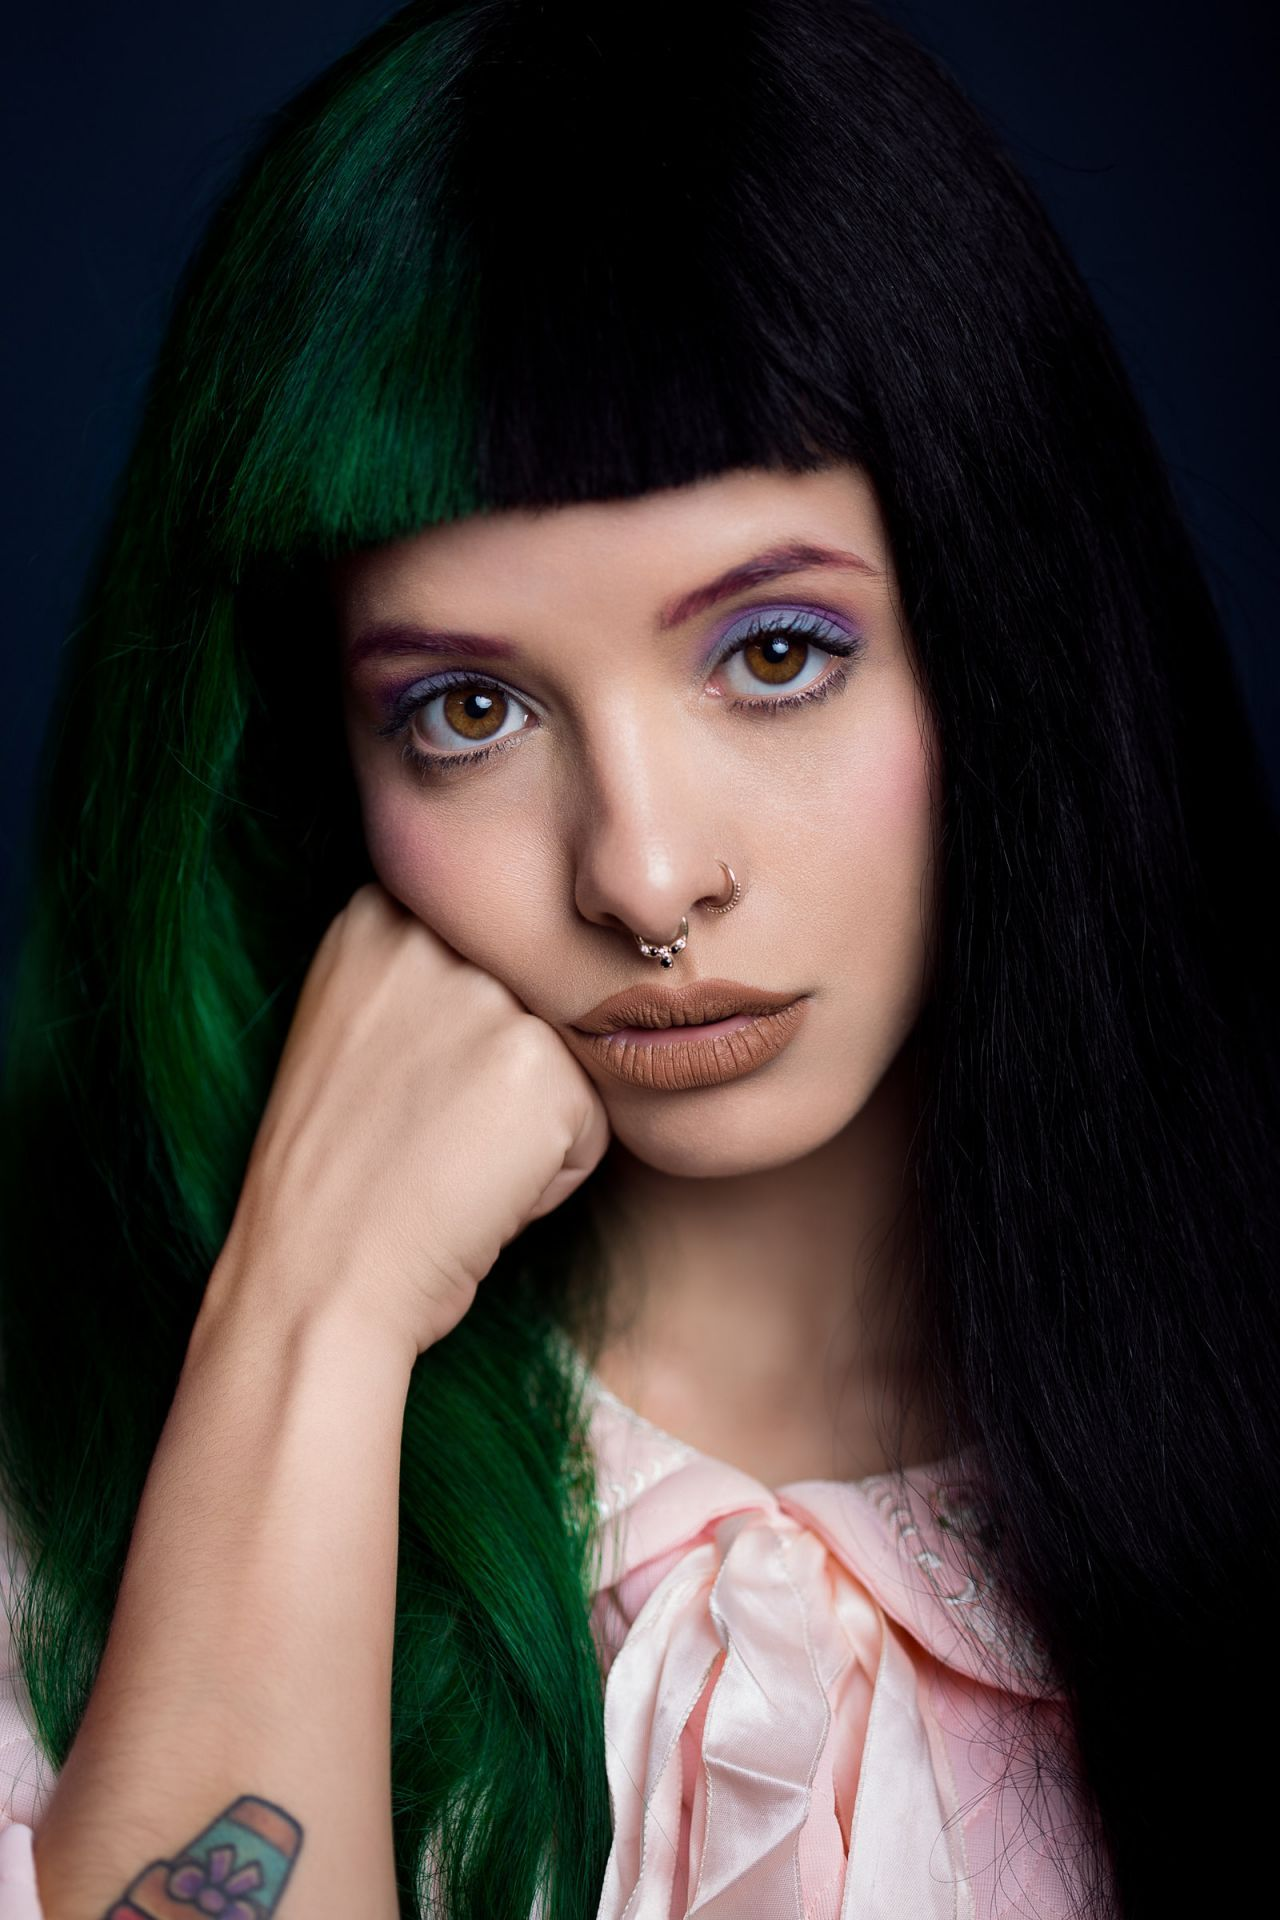 The green hair 🖤🖤 (With images) Melanie martinez